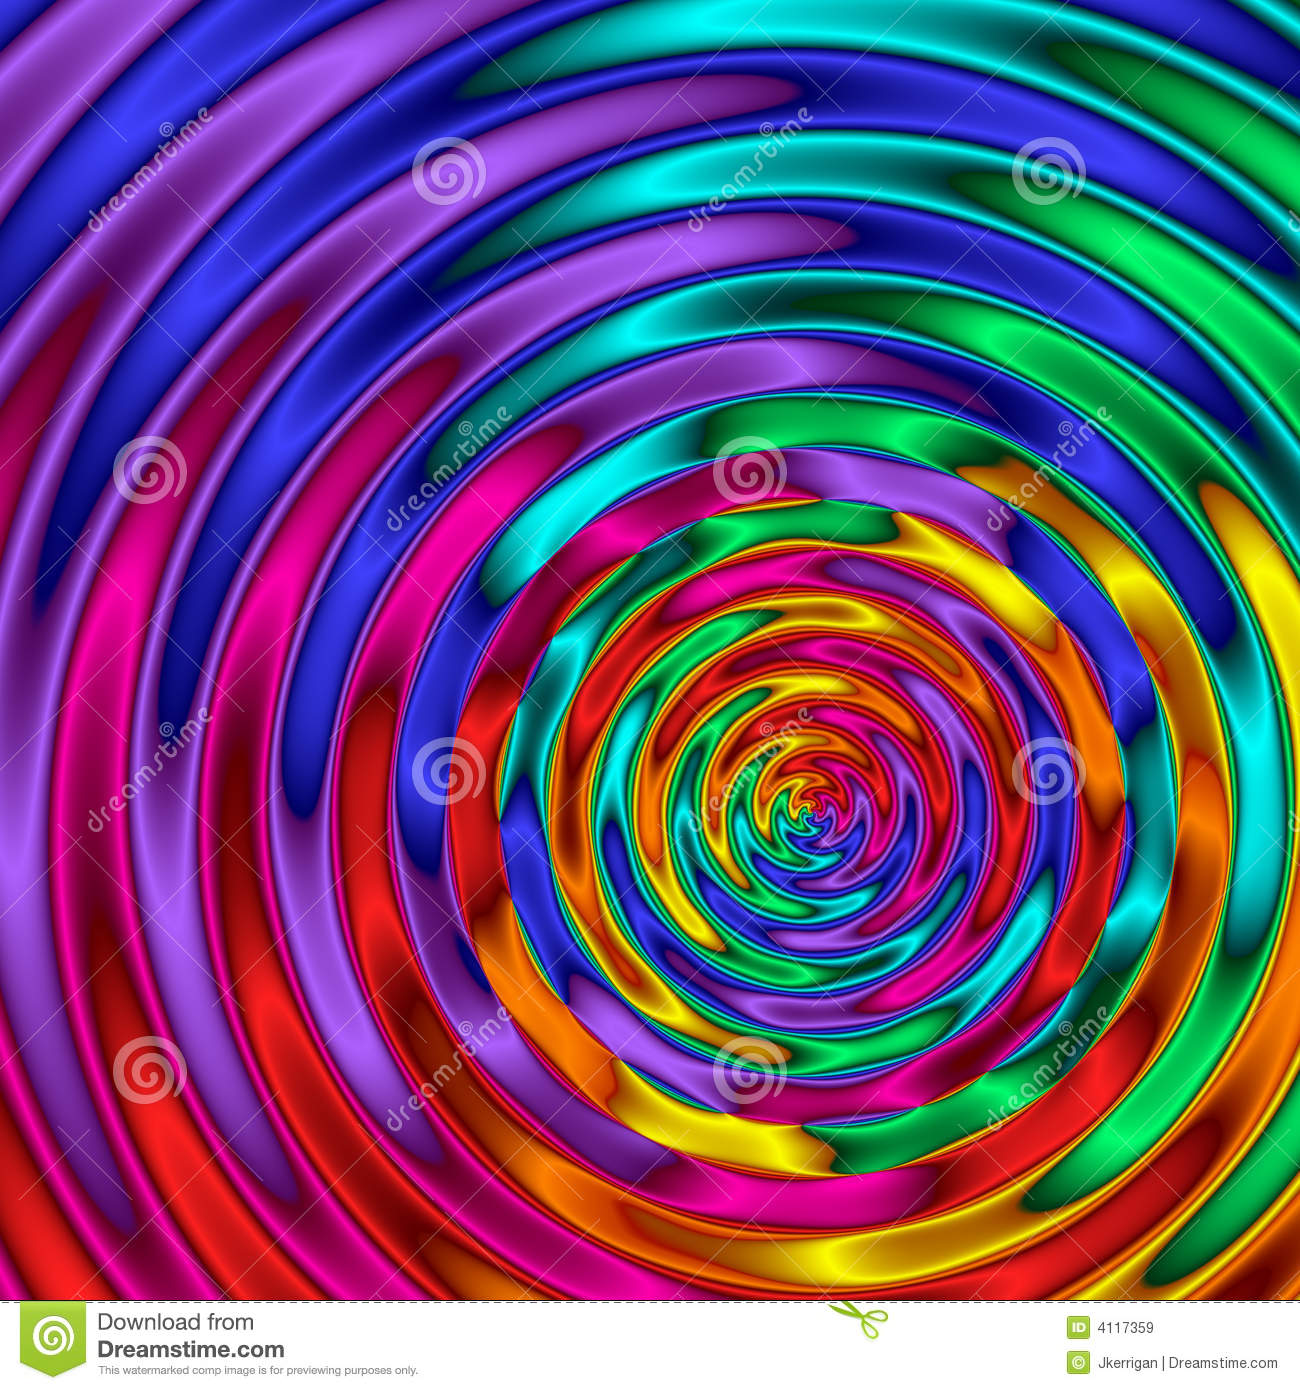 3d Colourful Wallpaper Rainbow Ripples Royalty Free Stock Images Image 4117359